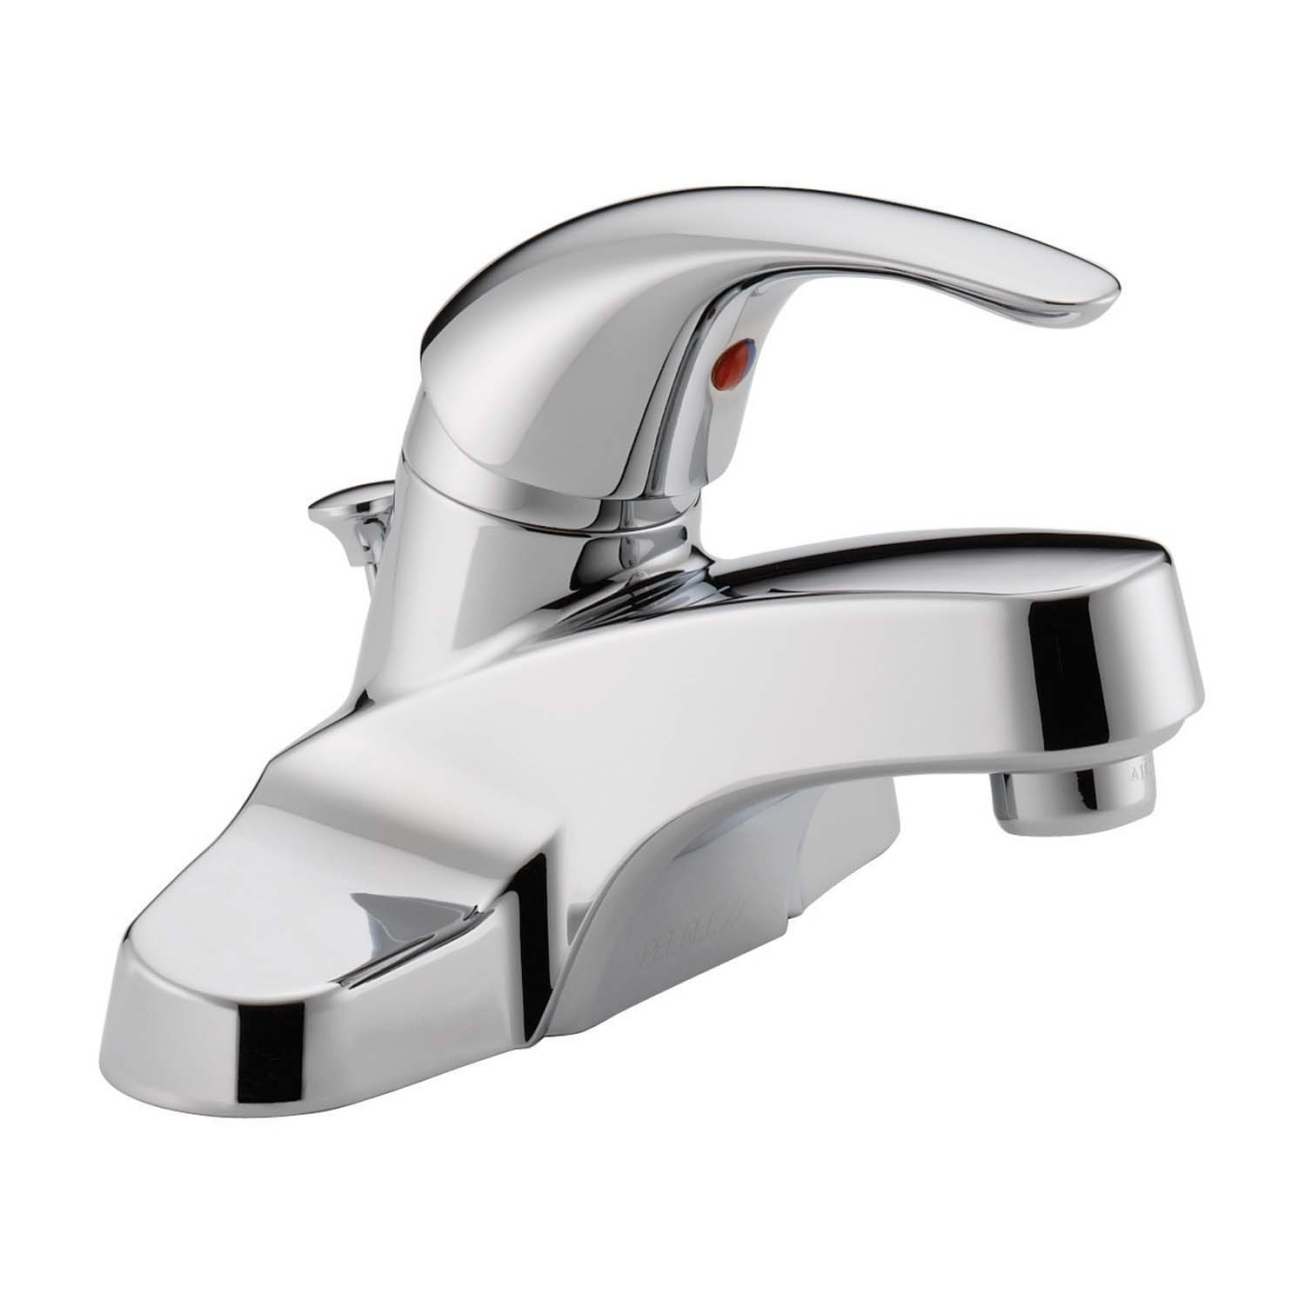 bathroom faucets and sink faucets at ace hardware in size 1305 x 1305